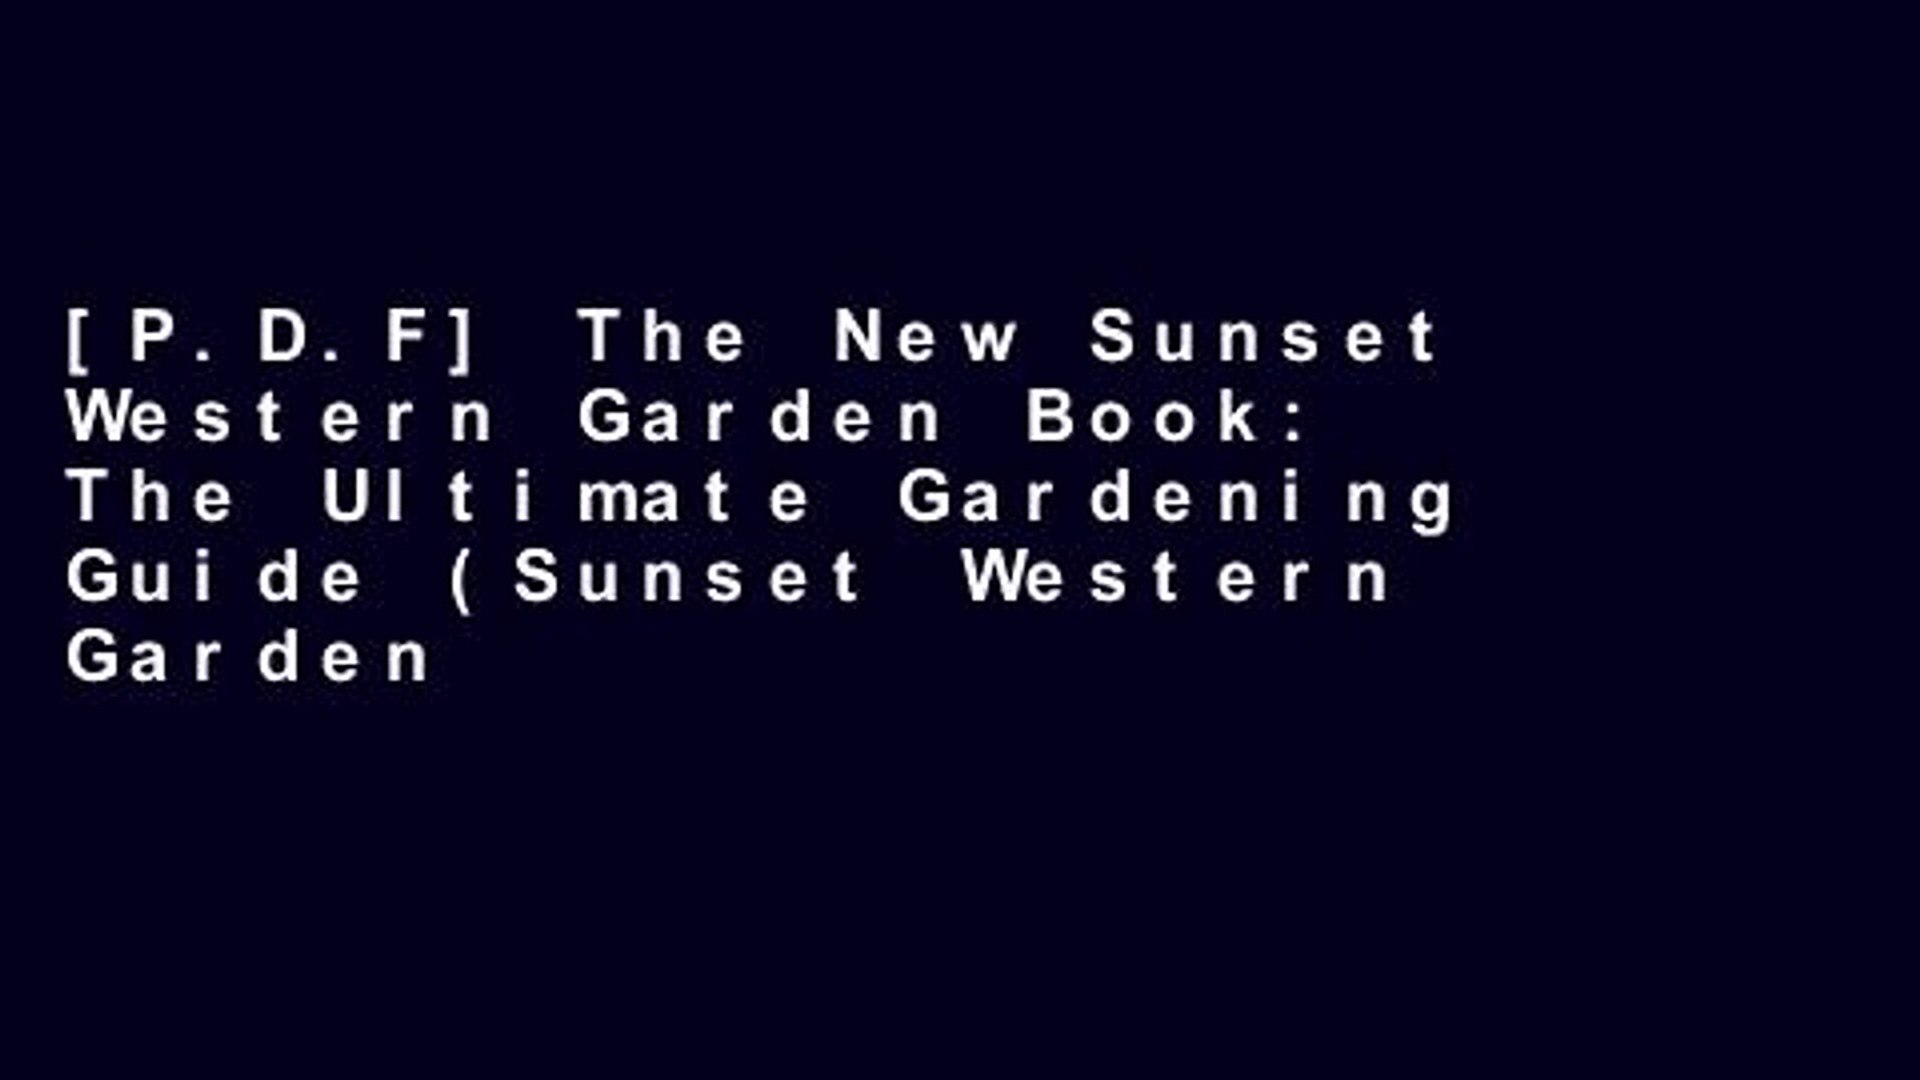 [P.D.F] The New Sunset Western Garden Book: The Ultimate Gardening Guide (Sunset Western Garden